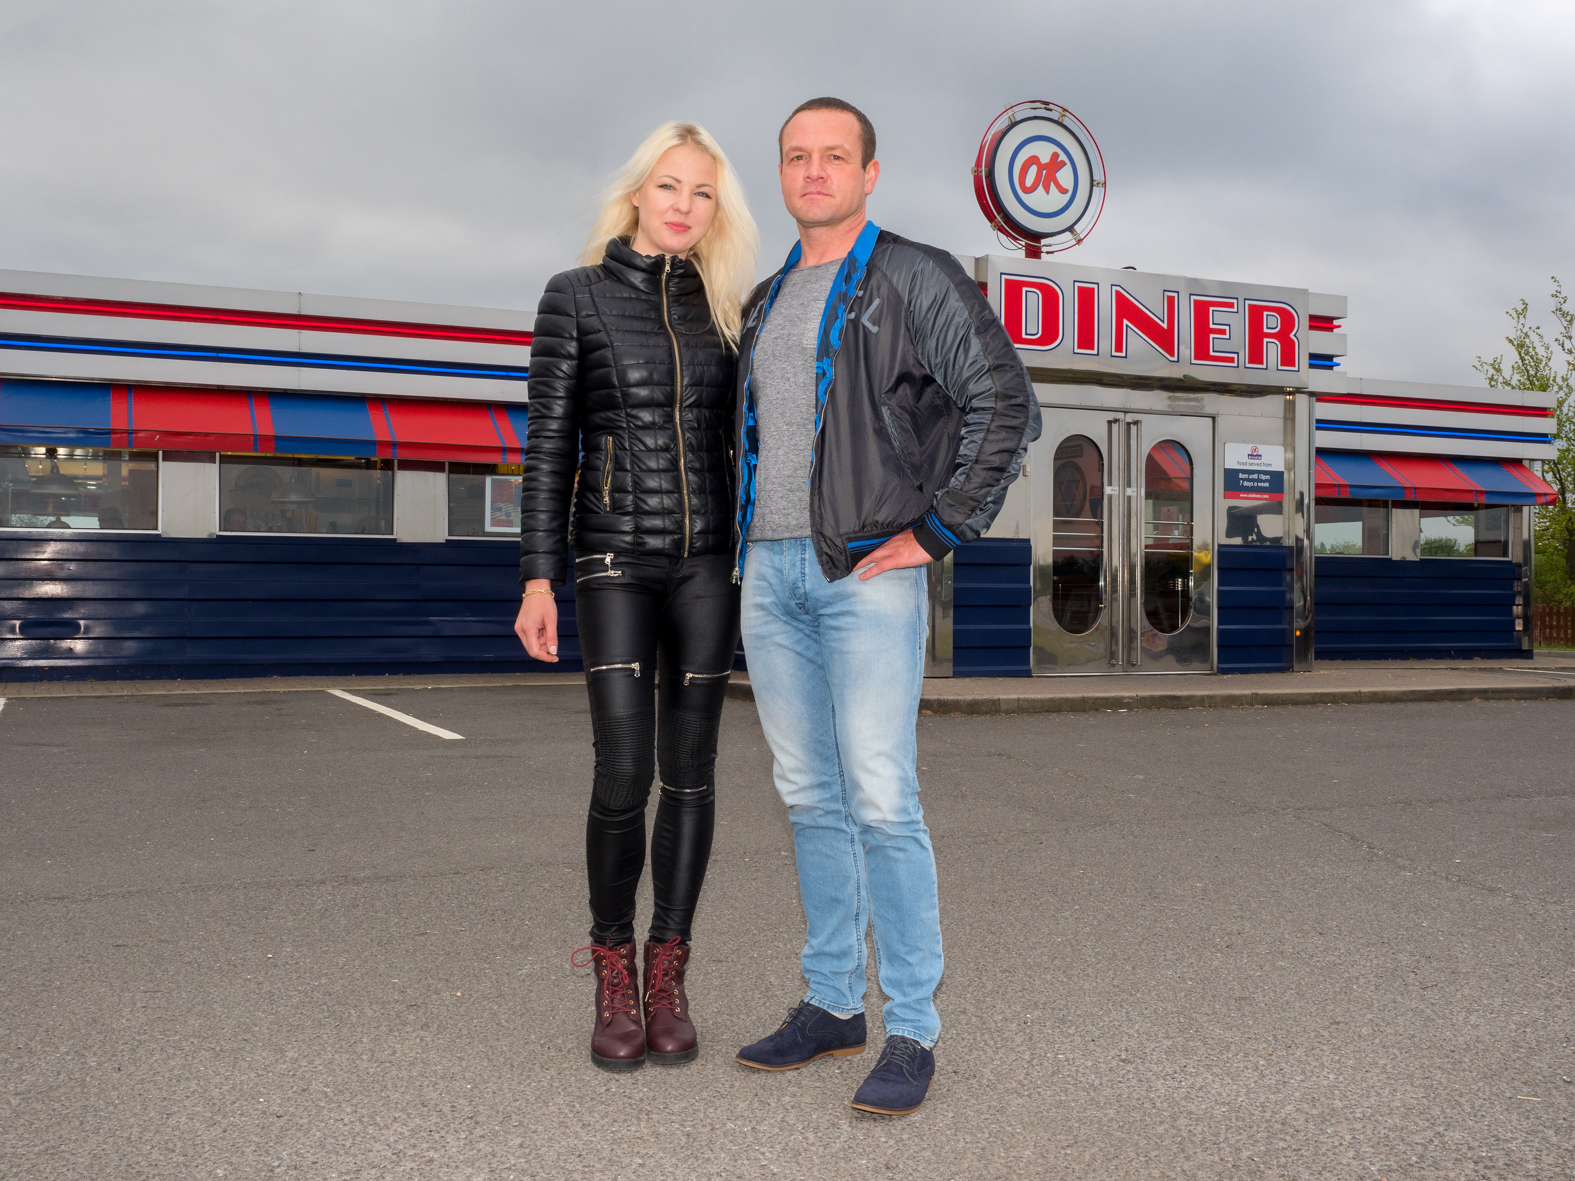 After a break at an OK DINER, Vilma and Darius are continuing on by car to Sheffield. Both Lithuanian , they have lived in Britain for over a decade and aren't concerned about their residency after the UK voted out in the European Referendum. Newark, Nottinghamshire.